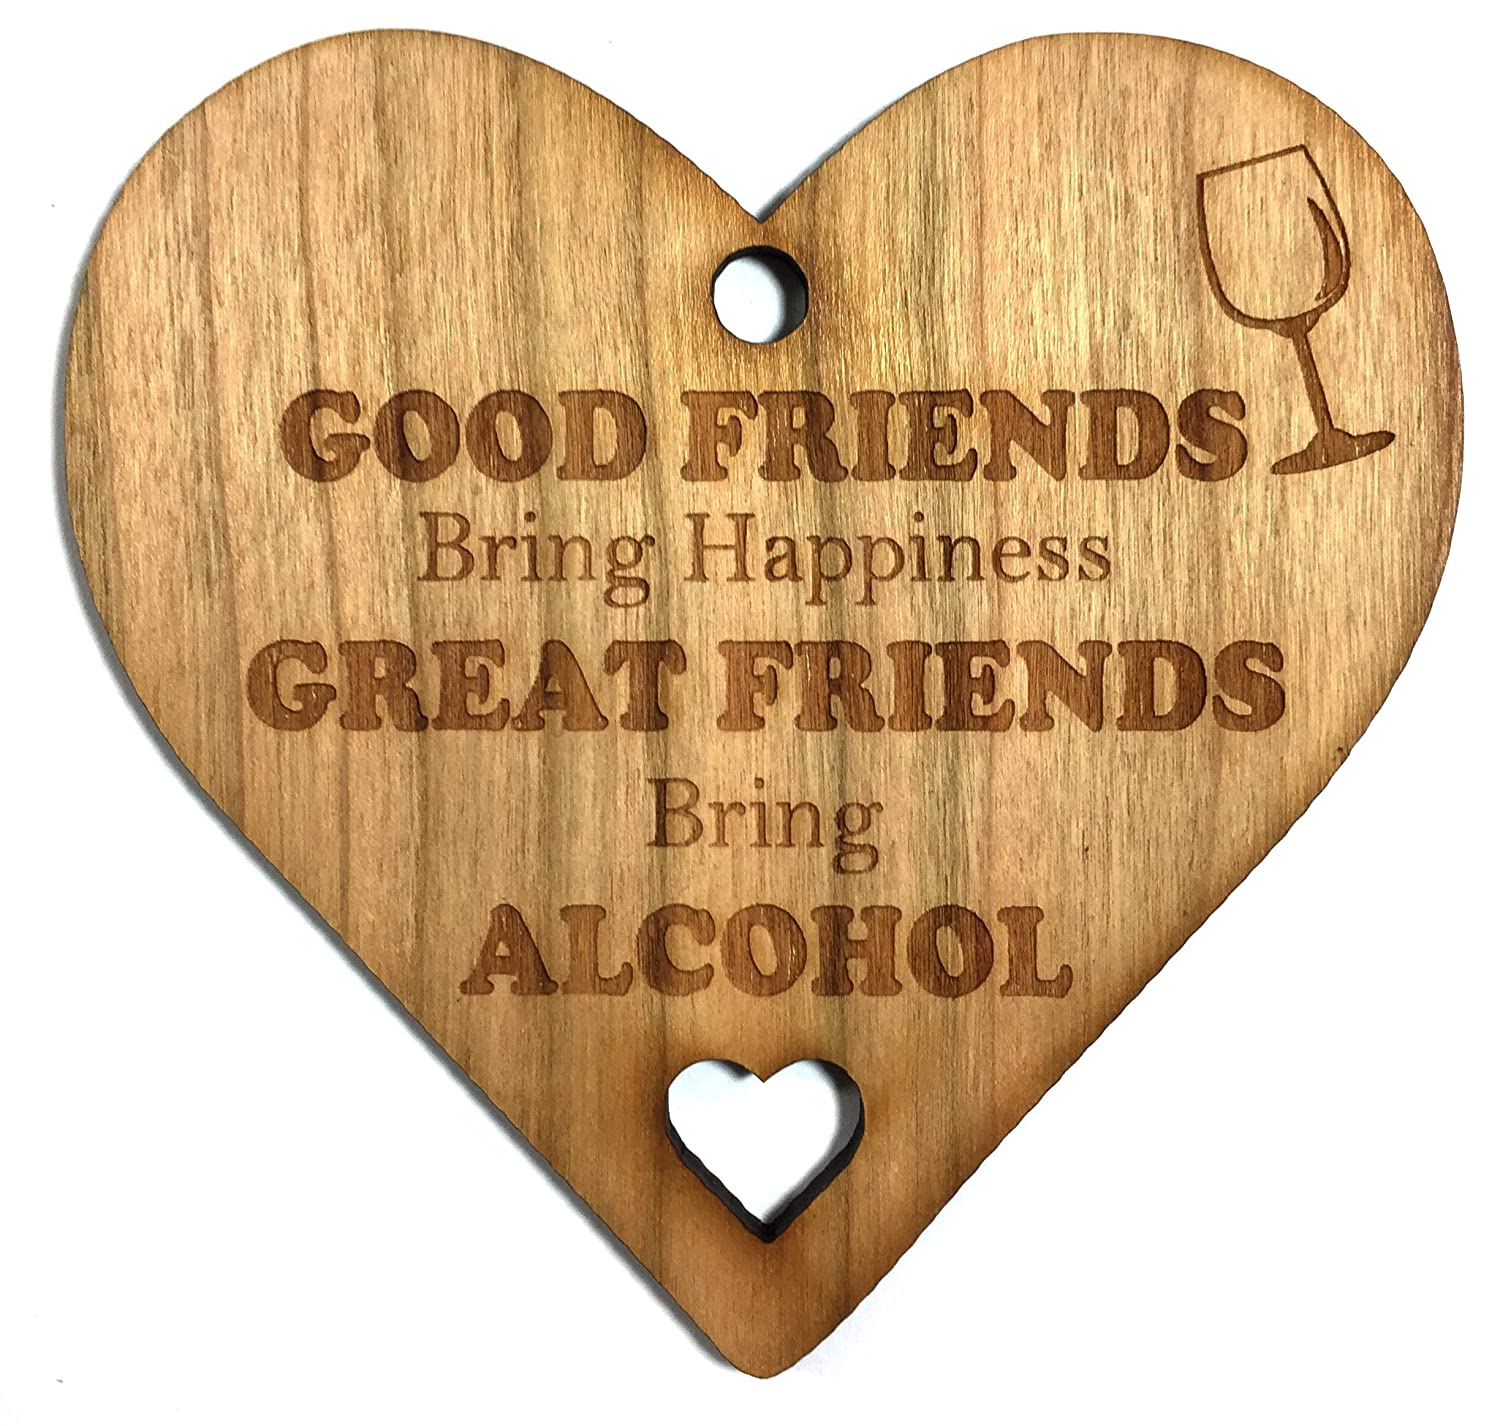 Wooden Hanging Plaque Alcohol Bottle Liquor Tag Party Tags for Vodka Gin Rum Tequila Scotch Whisky Whiskey Christmas Gift Box Hamper Set Ideas (wood)